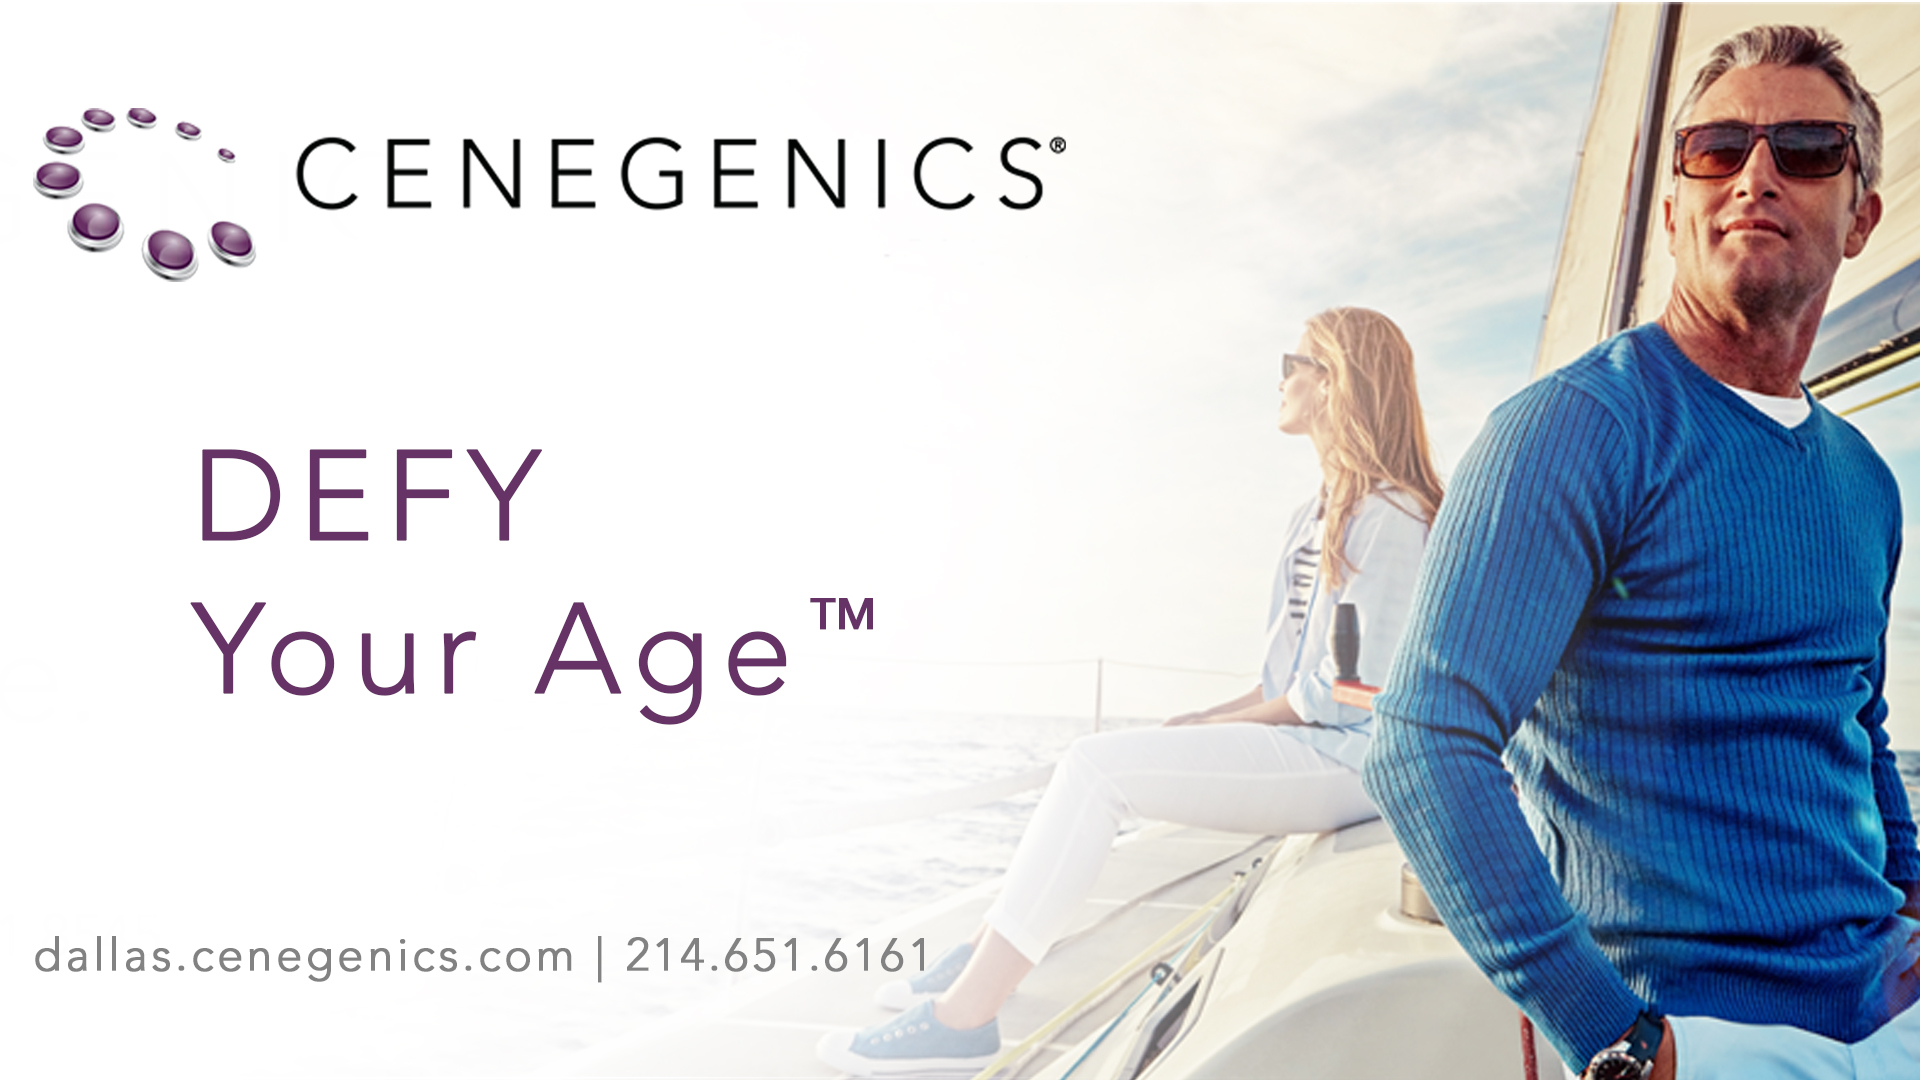 Cenegenics Dallas reviews | Medical Centers at 3811 Turtle Creek Blvd - Dallas TX